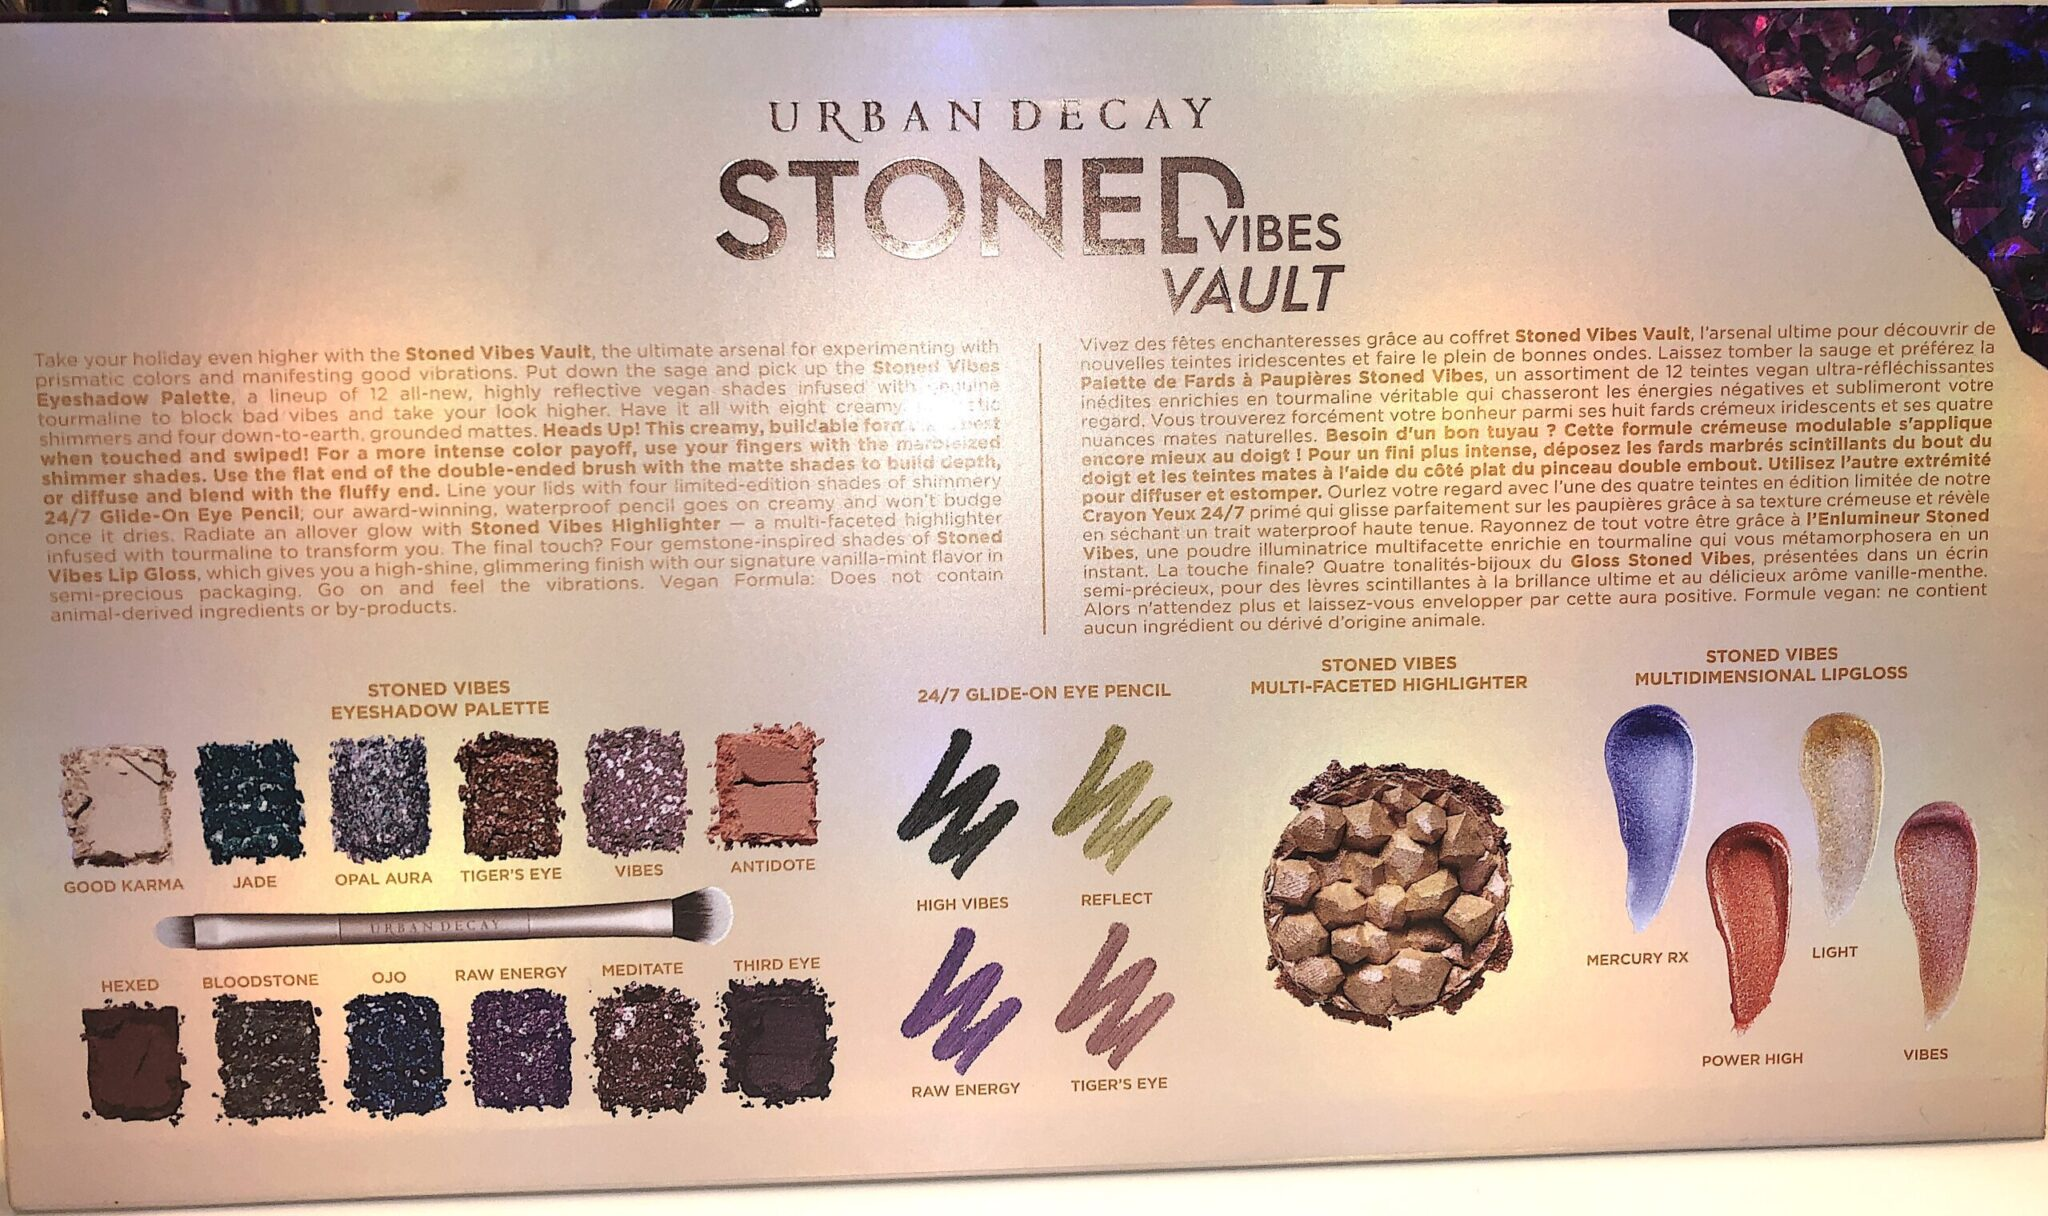 THE BACK OF THE STONED VIBES VAULT GIFT SET BOX